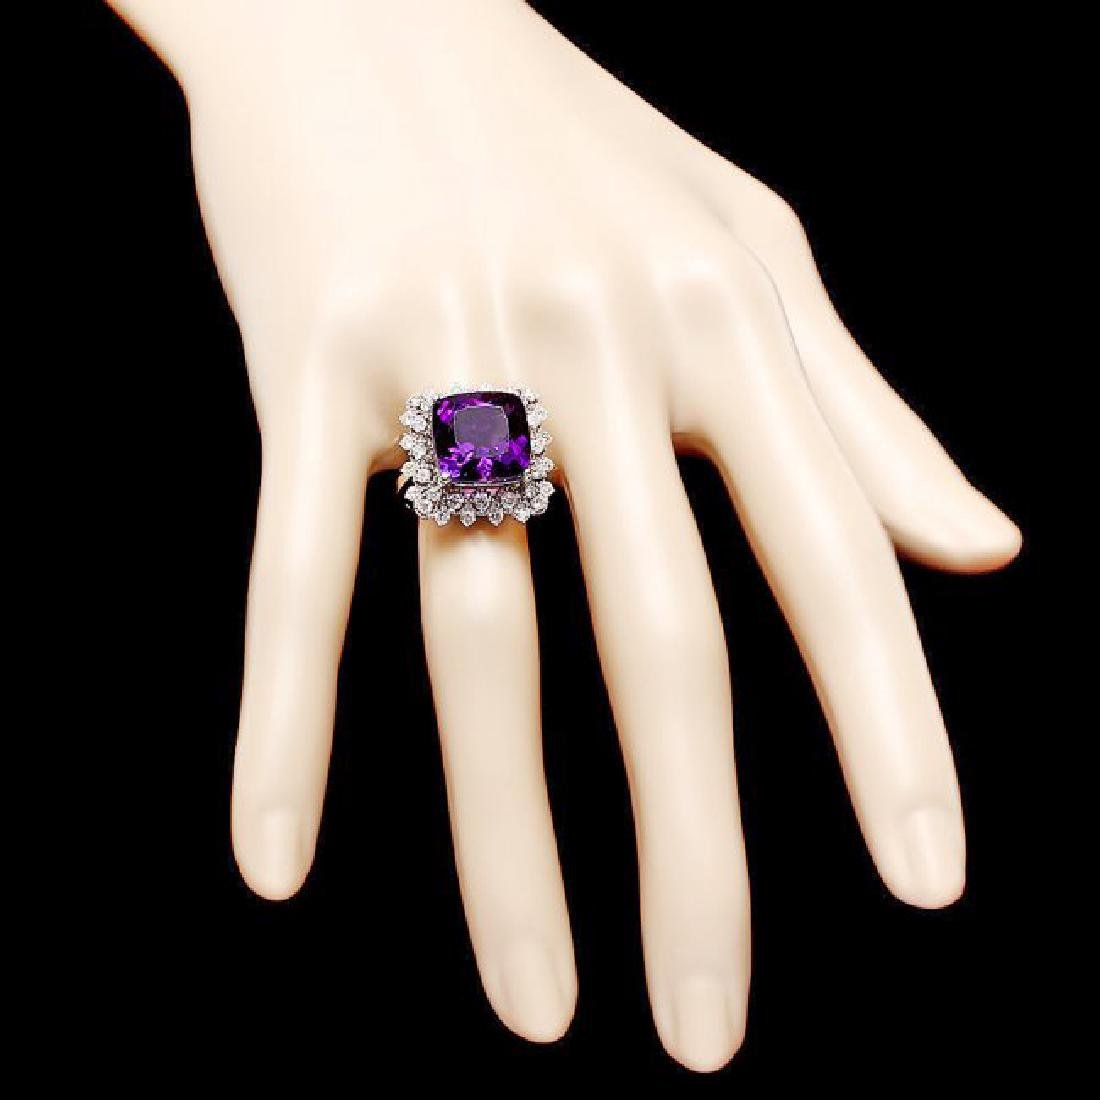 14k Gold 8.00ct Amethyst 1.00ct Diamond Ring - 4